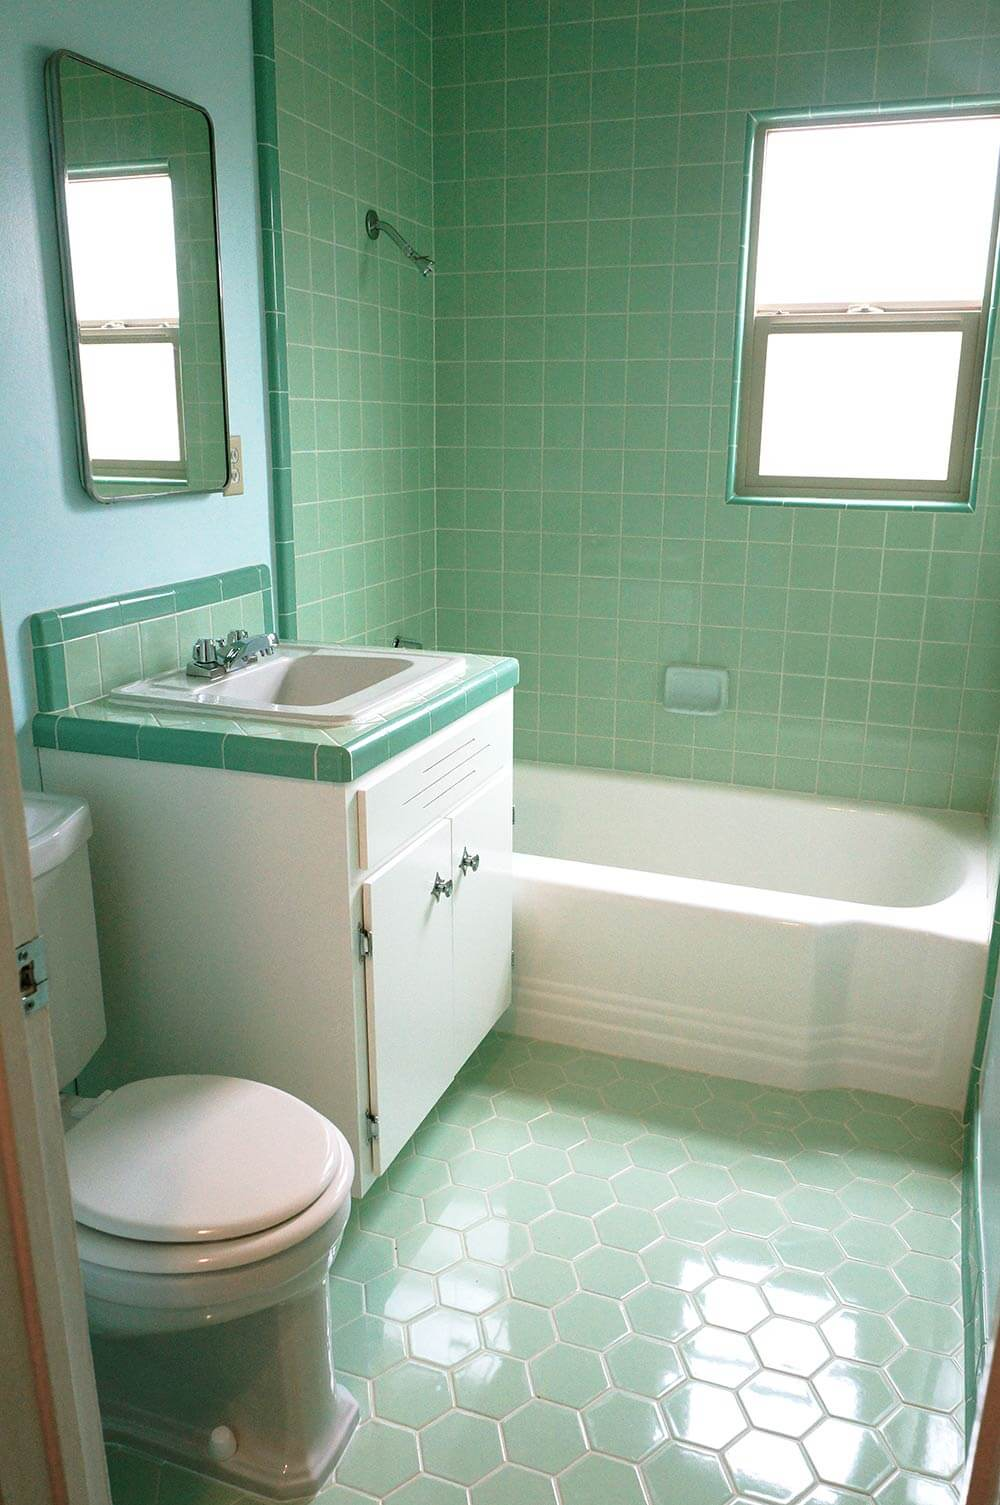 Mint Green Bathroom Design : The color green in kitchen and bathroom sinks tubs